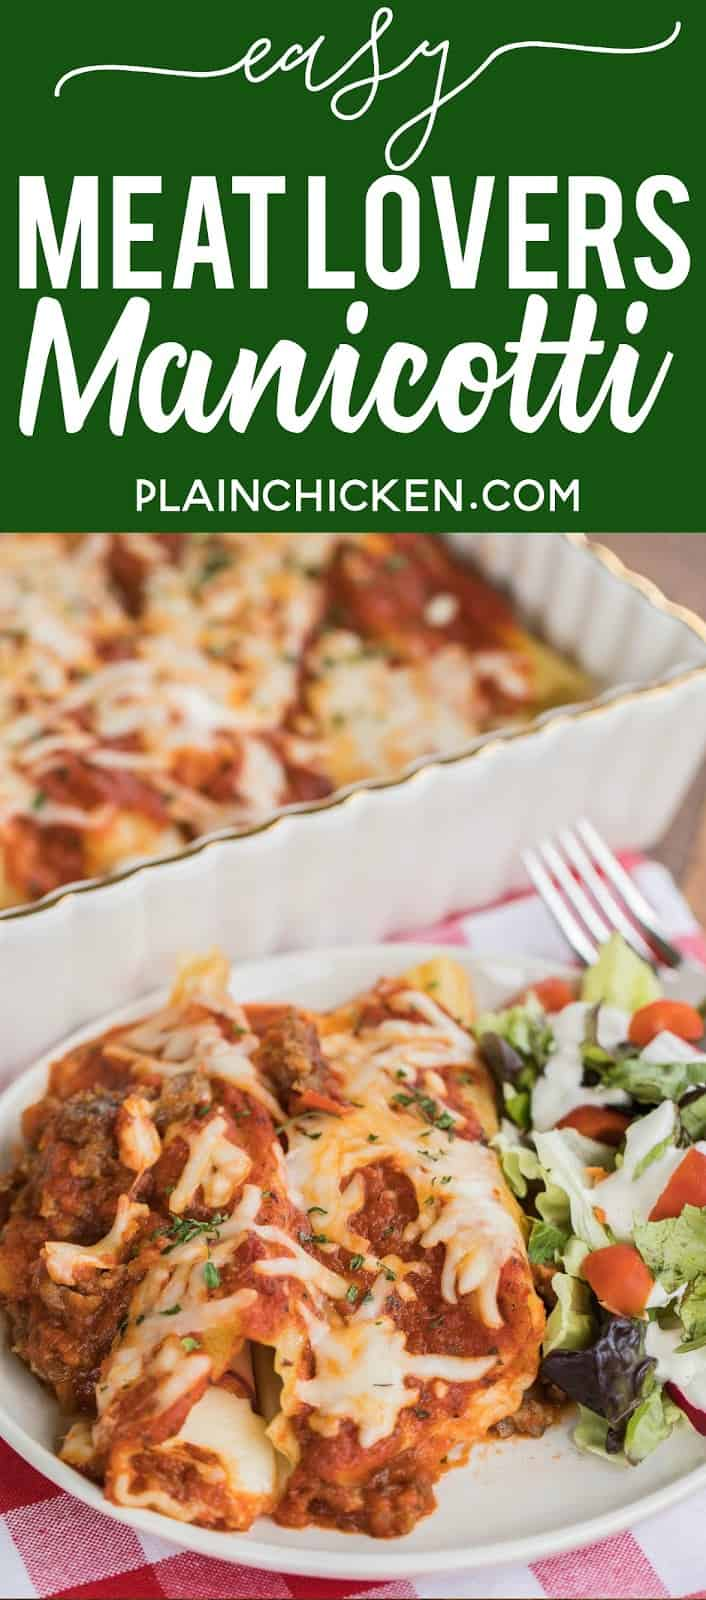 Easy Meat Lovers Manicotti Recipe - manicotti stuffed with cheese, ham and pepperoni and baked in a quick meat sauce. Super easy and DELICIOUS stuffed pasta casserole. Use string cheese to easily stuff cooked manicotti noodles. Can make ahead and refrigerate or freeze for later. All you need is a salad and some garlic bread for a quick weeknight meal!! #casserole #manicotti #pastacasserole #bakedpasta #freezermeal #makeaheadmeal